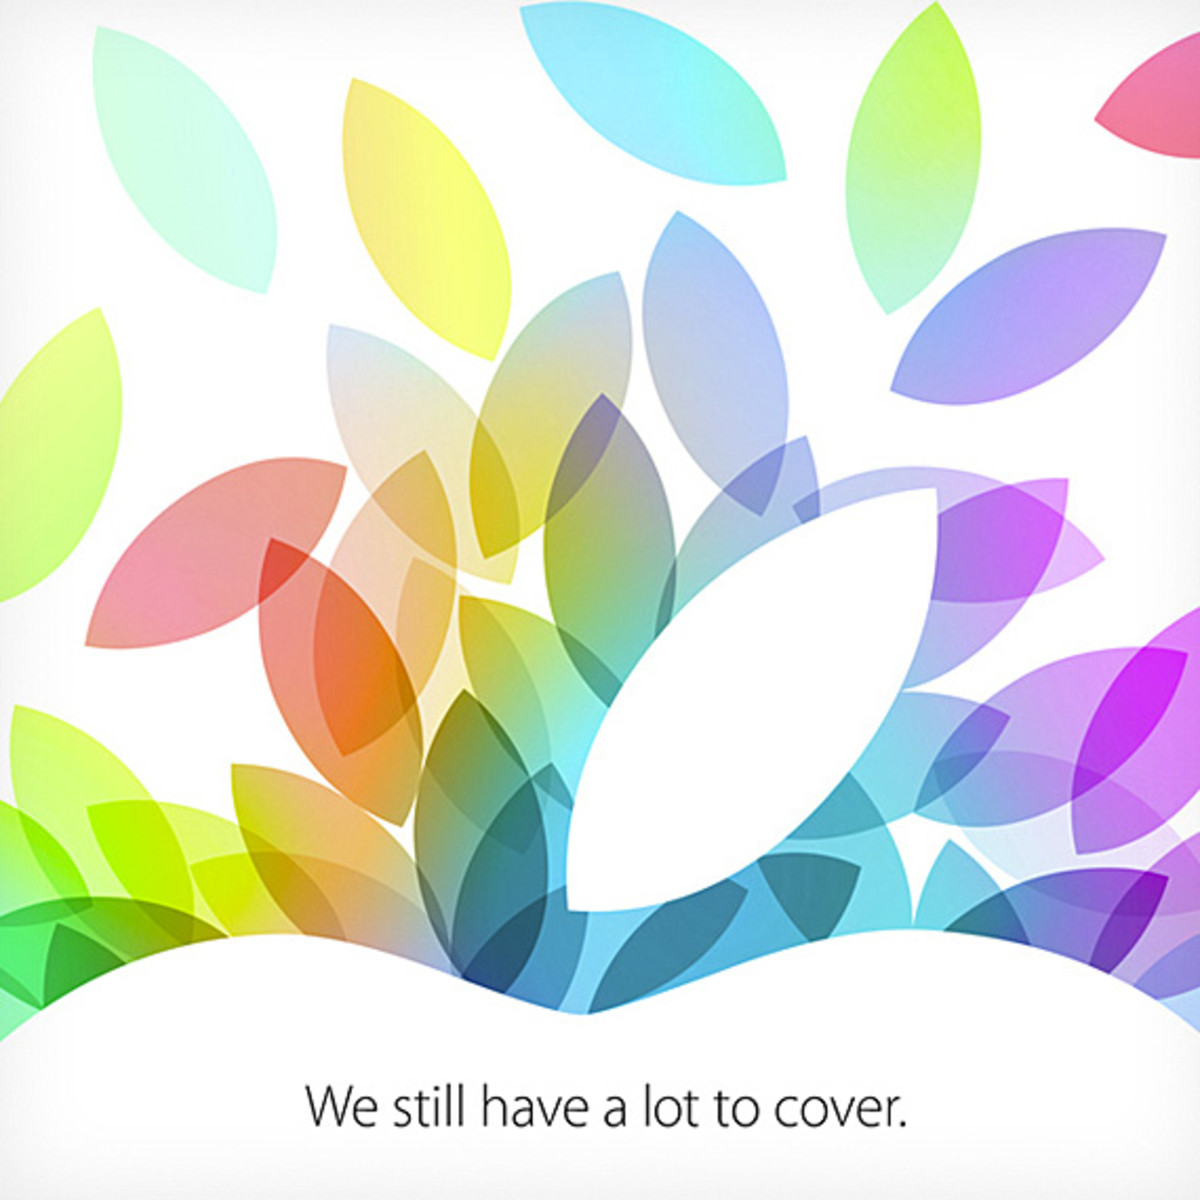 apple-new-products-announcement-october-22-2013-01